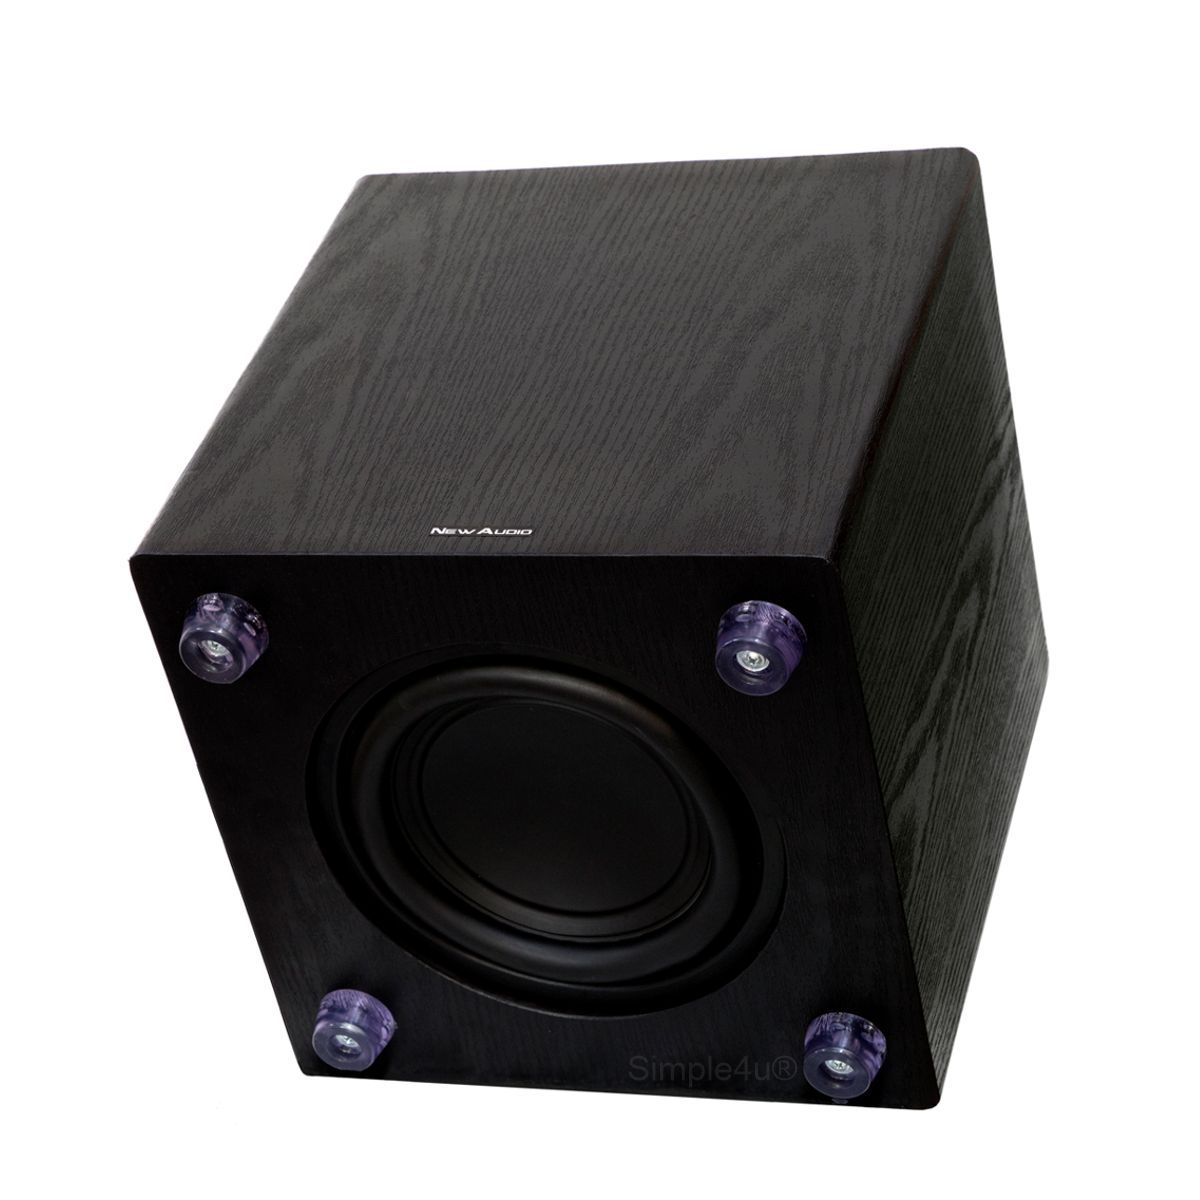 "Subwoofer Ativo 10"" 200W RMS Clean Design Wood SUB200 10 New Audio"